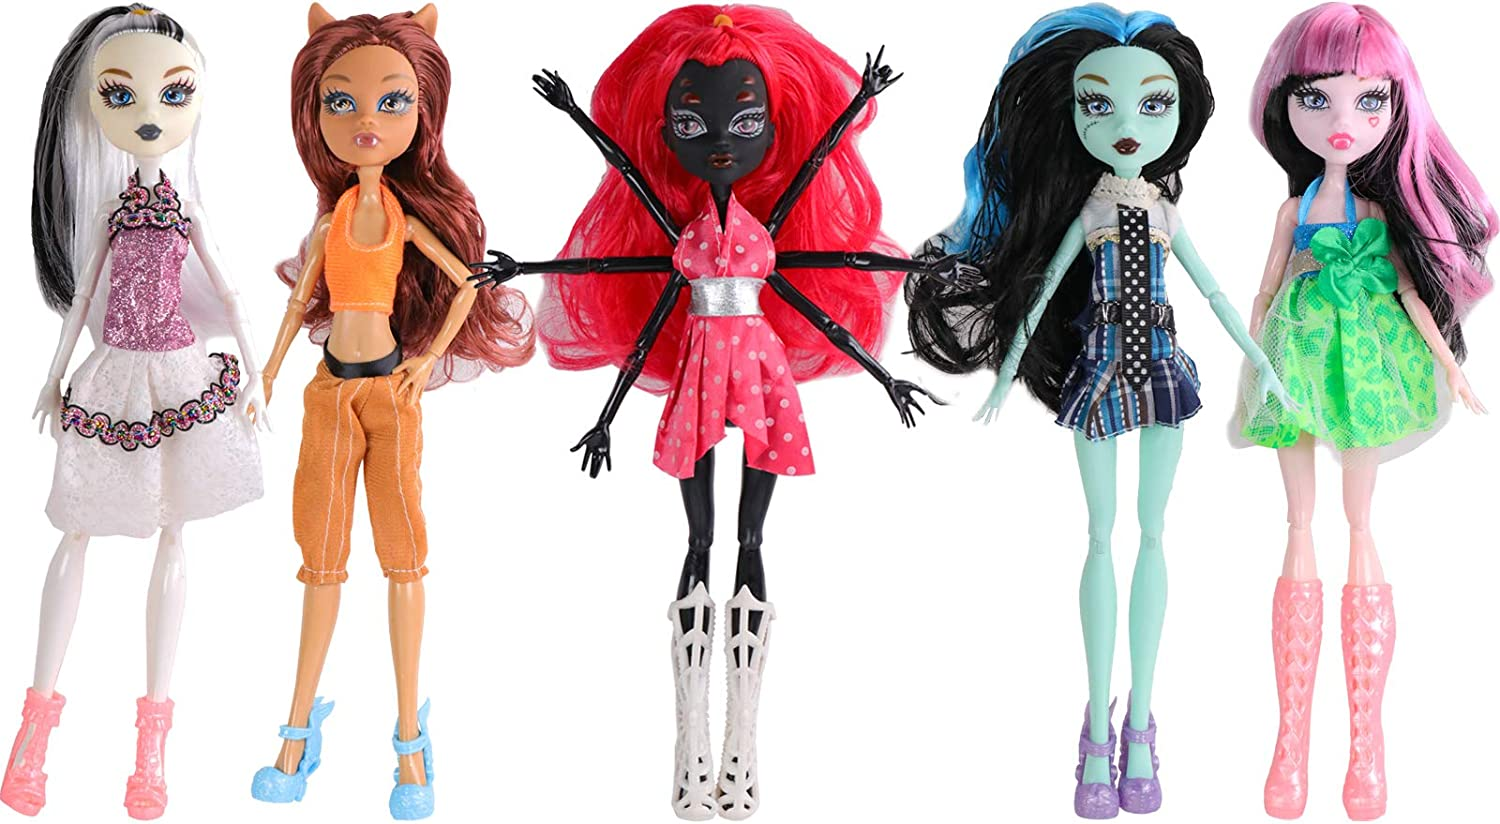 ONEST 5 Sets 11 Alternative dealer quality assurance Inch Monster Pieces Girl Dolls Include Mo